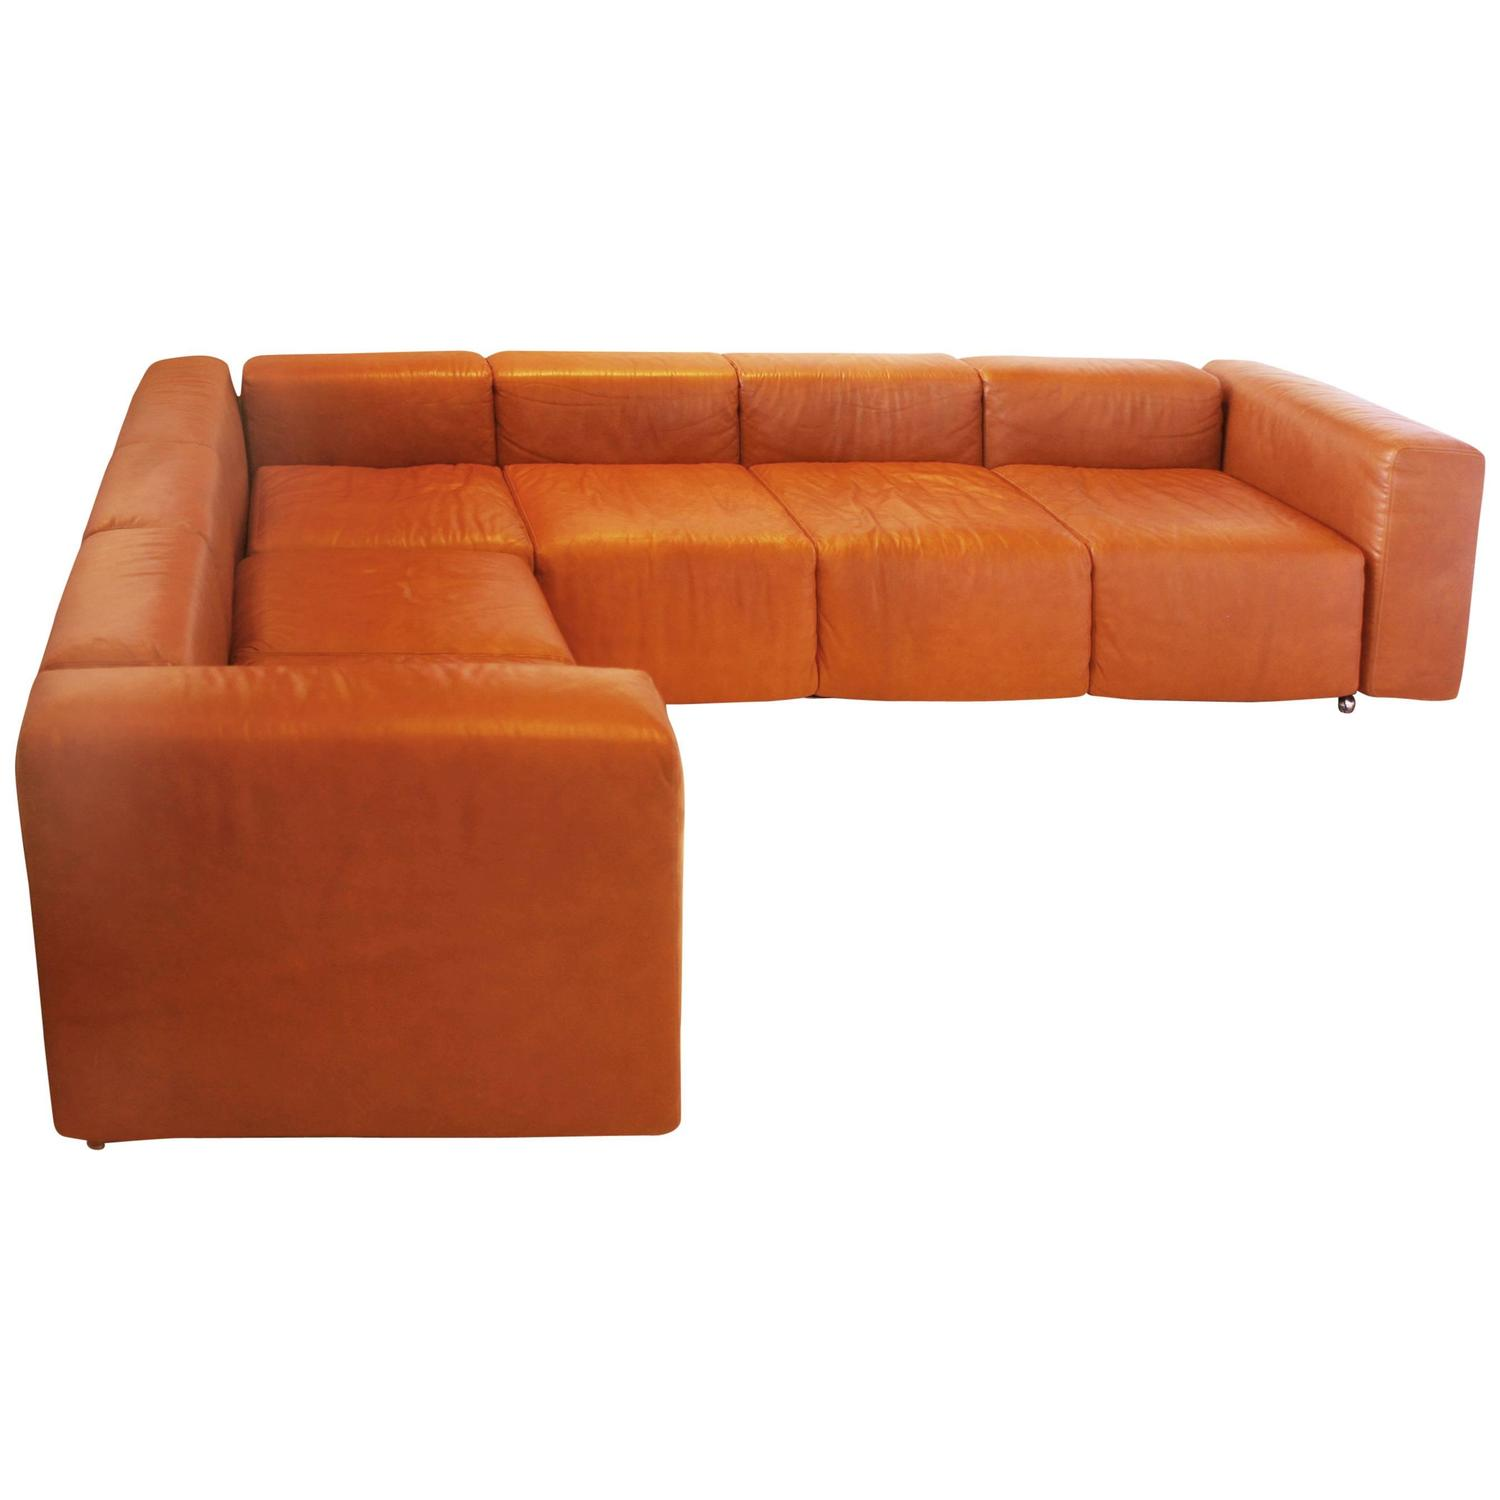 vintage harvey probber sofa in cognac leather at 1stdibs. Black Bedroom Furniture Sets. Home Design Ideas